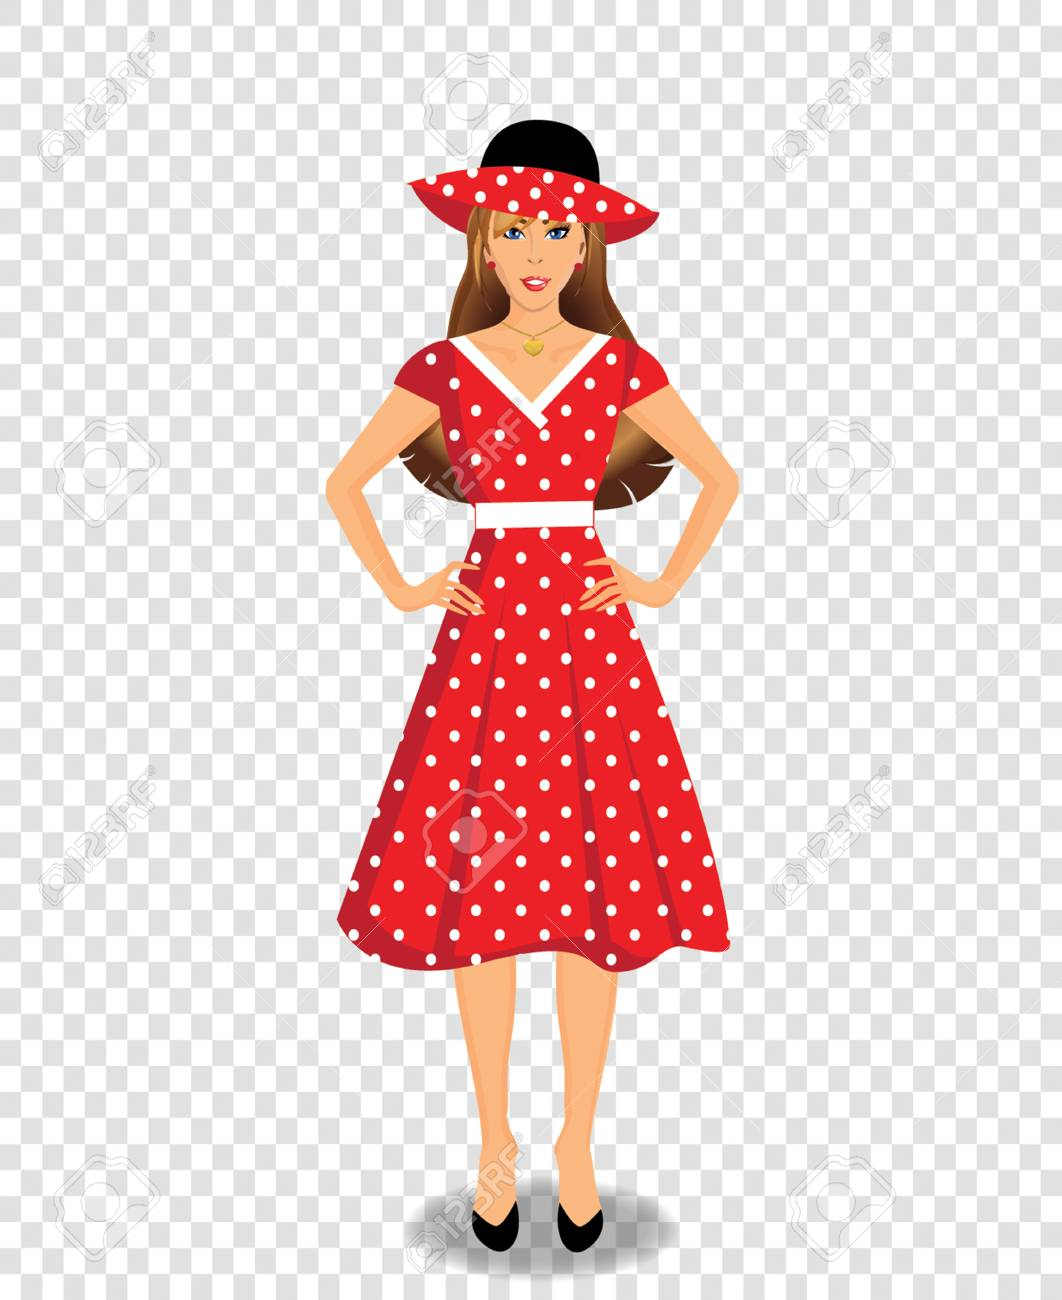 red dress character